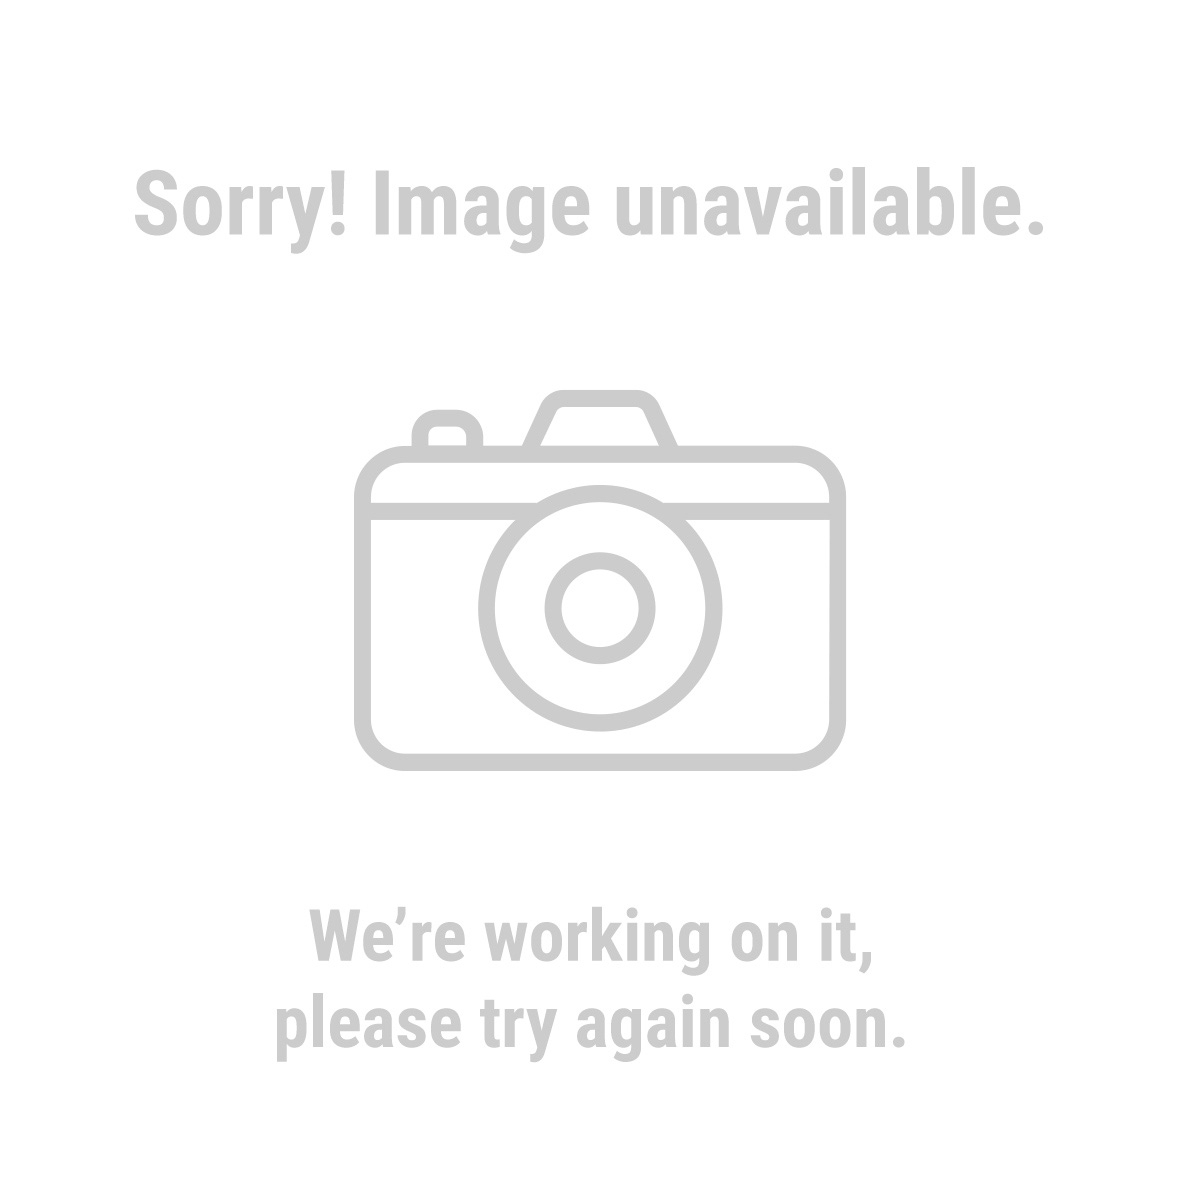 Storehouse 67558 555 Piece Cotter Pin Storehouse